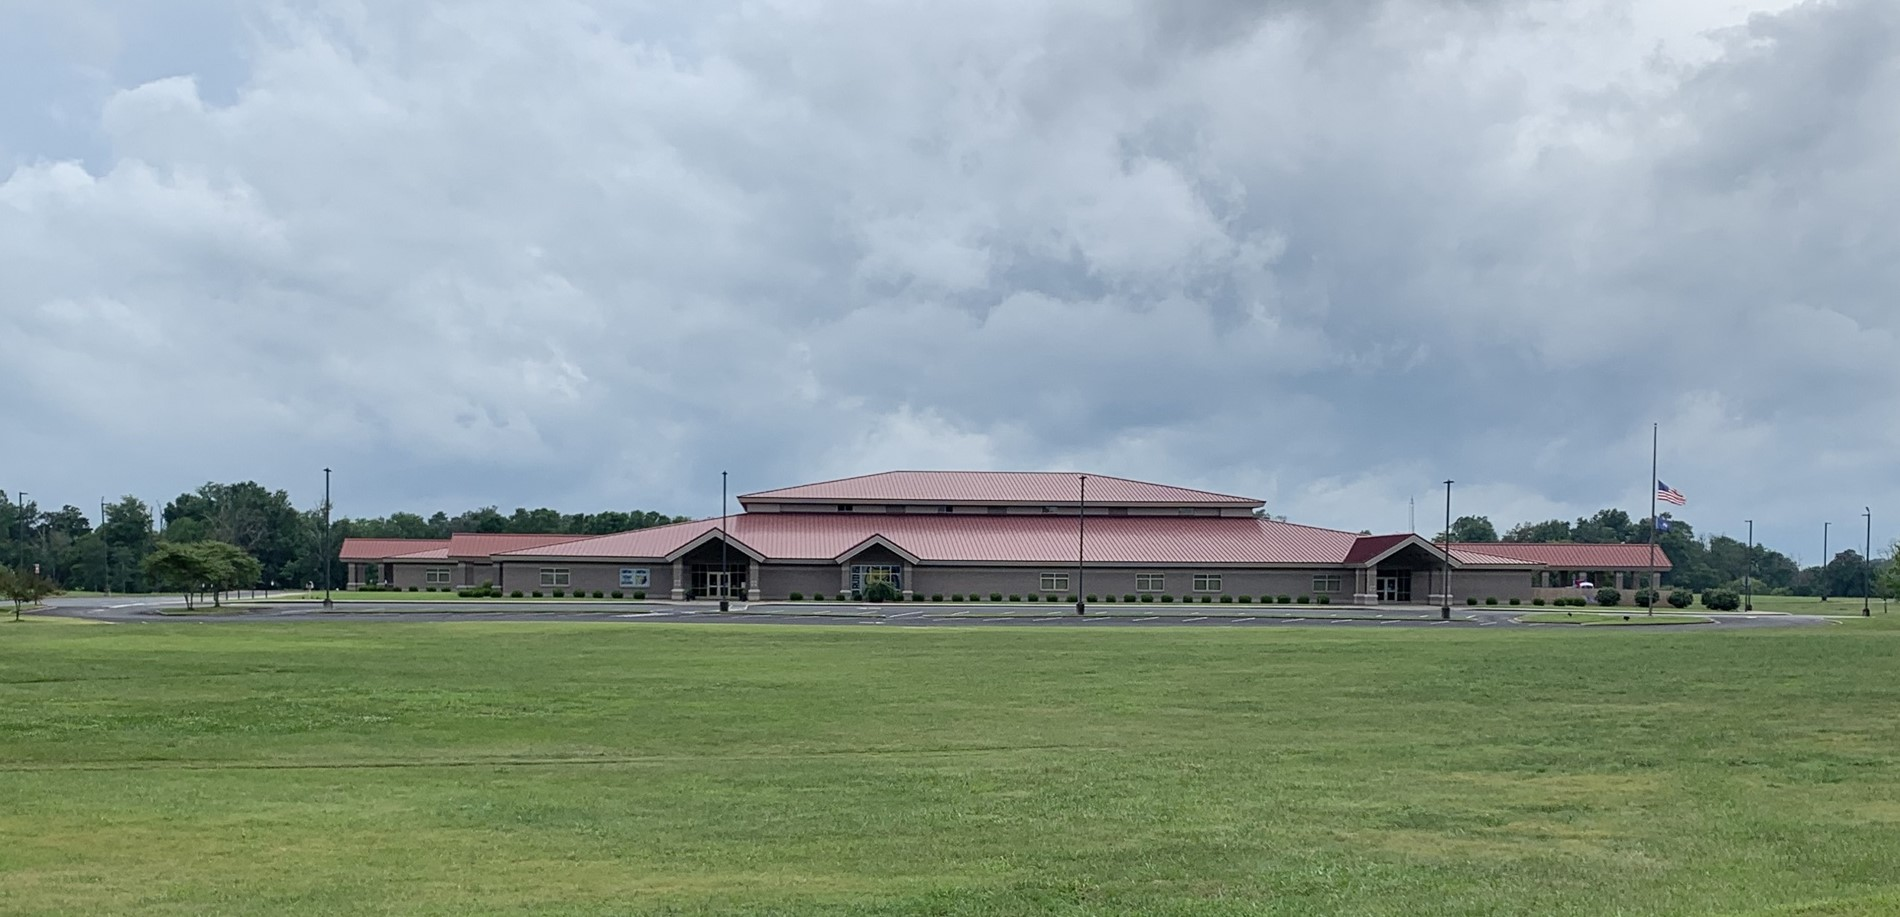 Front view of Creekside Elementary